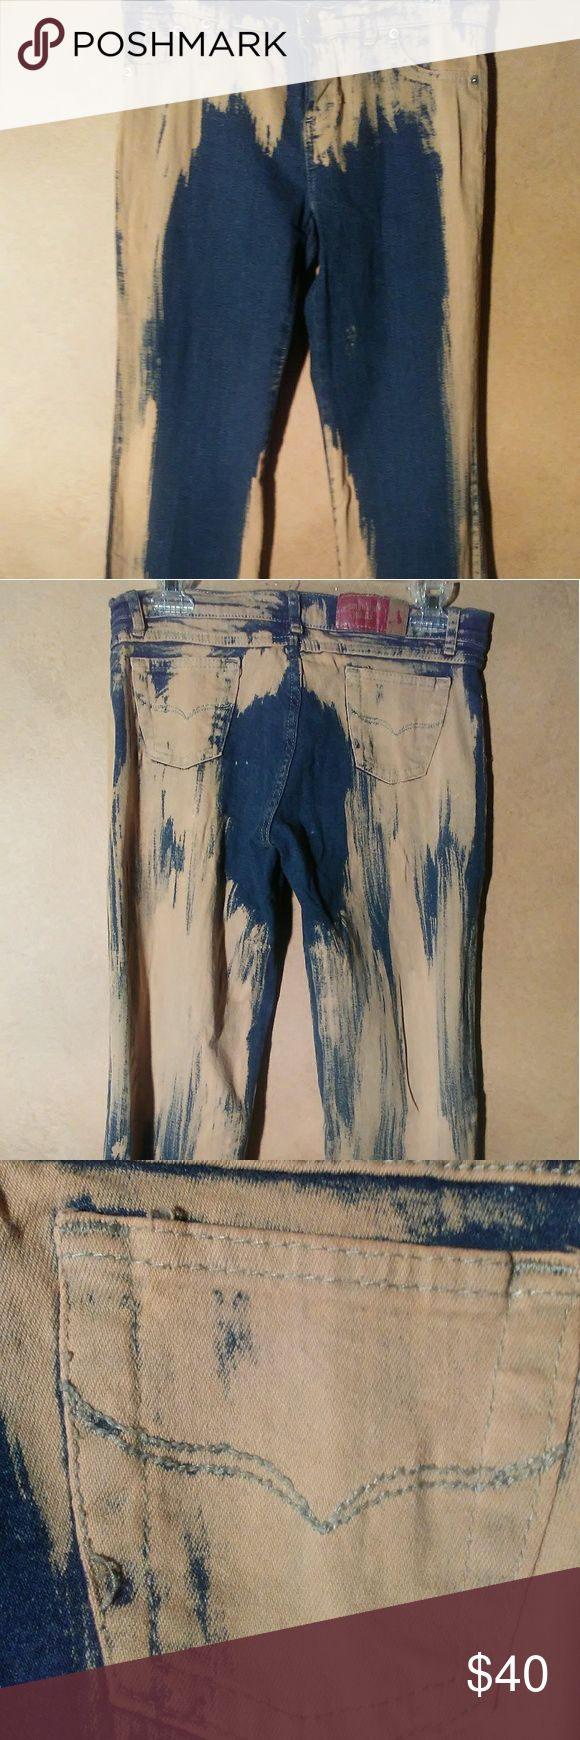 "Embrujo Jeans Lovely Embrujo boot cut jeans Size 46 Inseam 33"" Condition - new without tags embrujo Jeans Boot Cut"